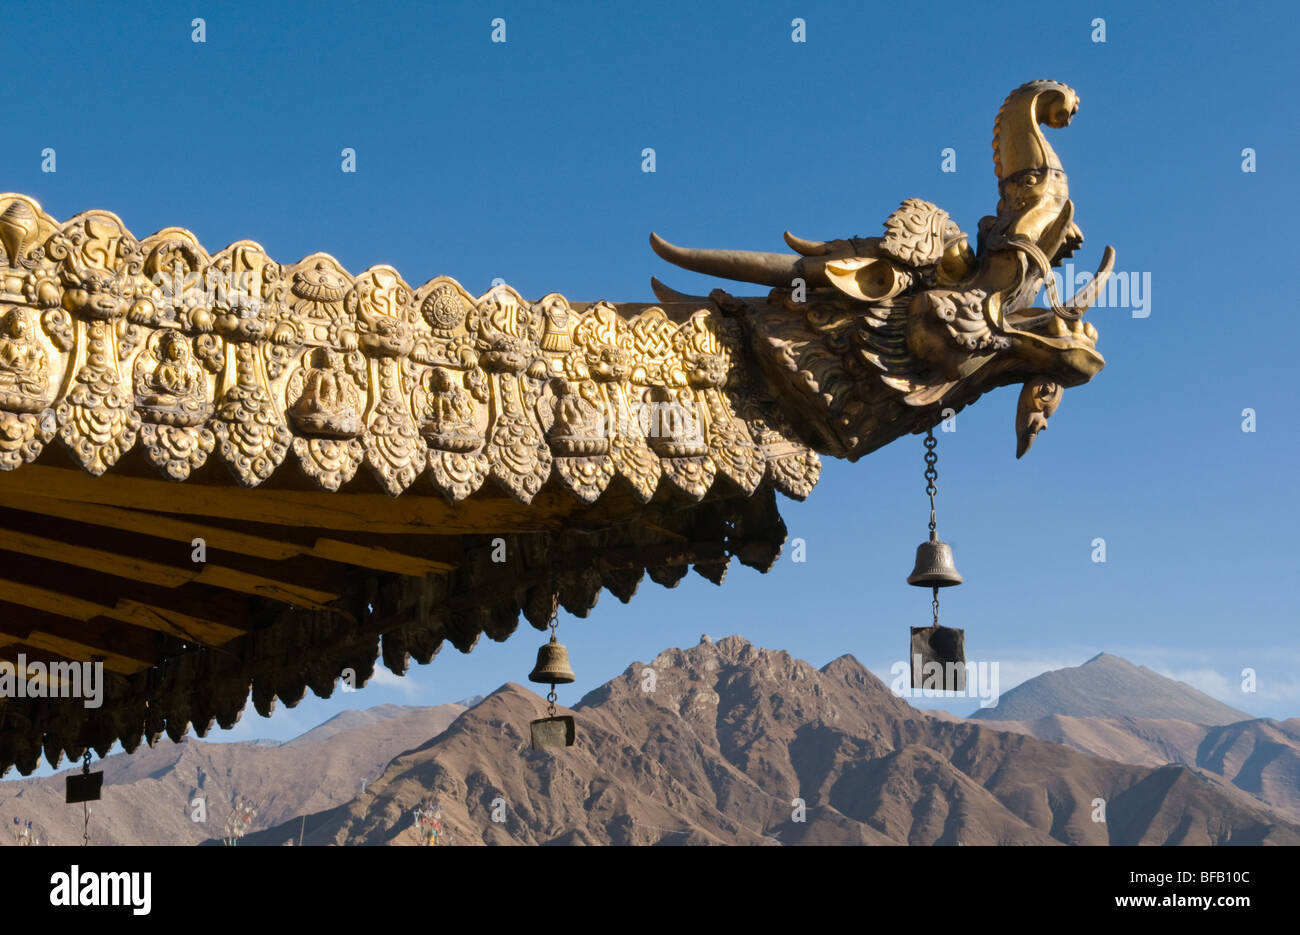 Ornamental roof of the Jokhang Temple in Lhasa Tibet - Stock Image